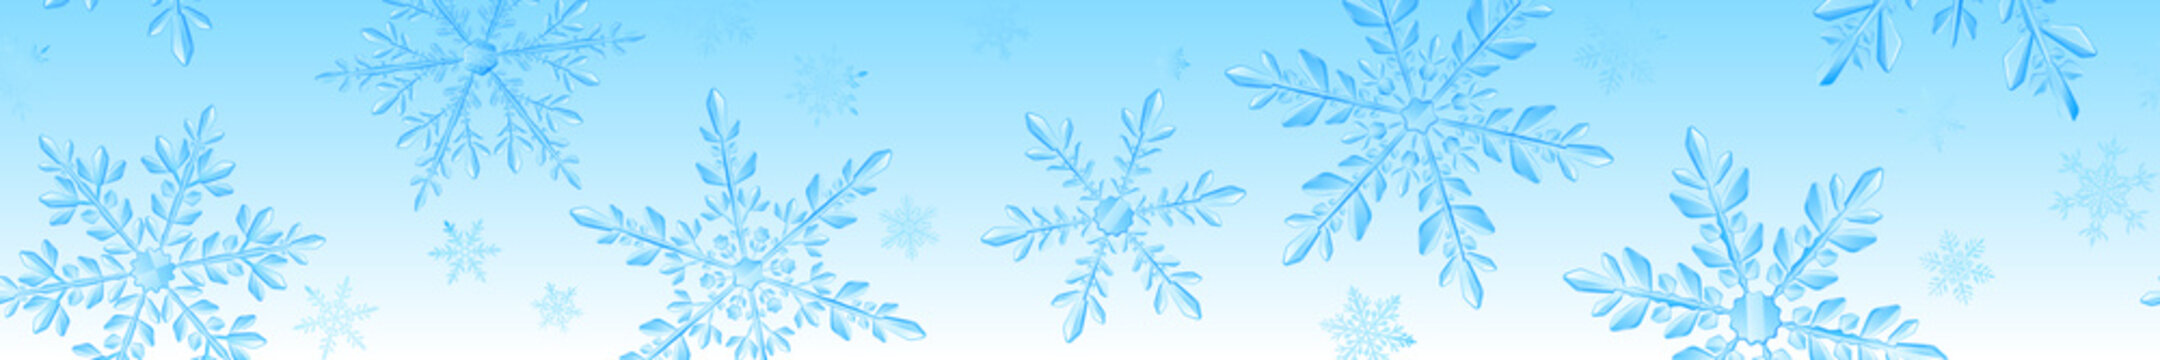 Christmas banner of large complex transparent snowflakes in light blue colors on gradient background. With horizontal repeating pattern. Transparency only in vector format